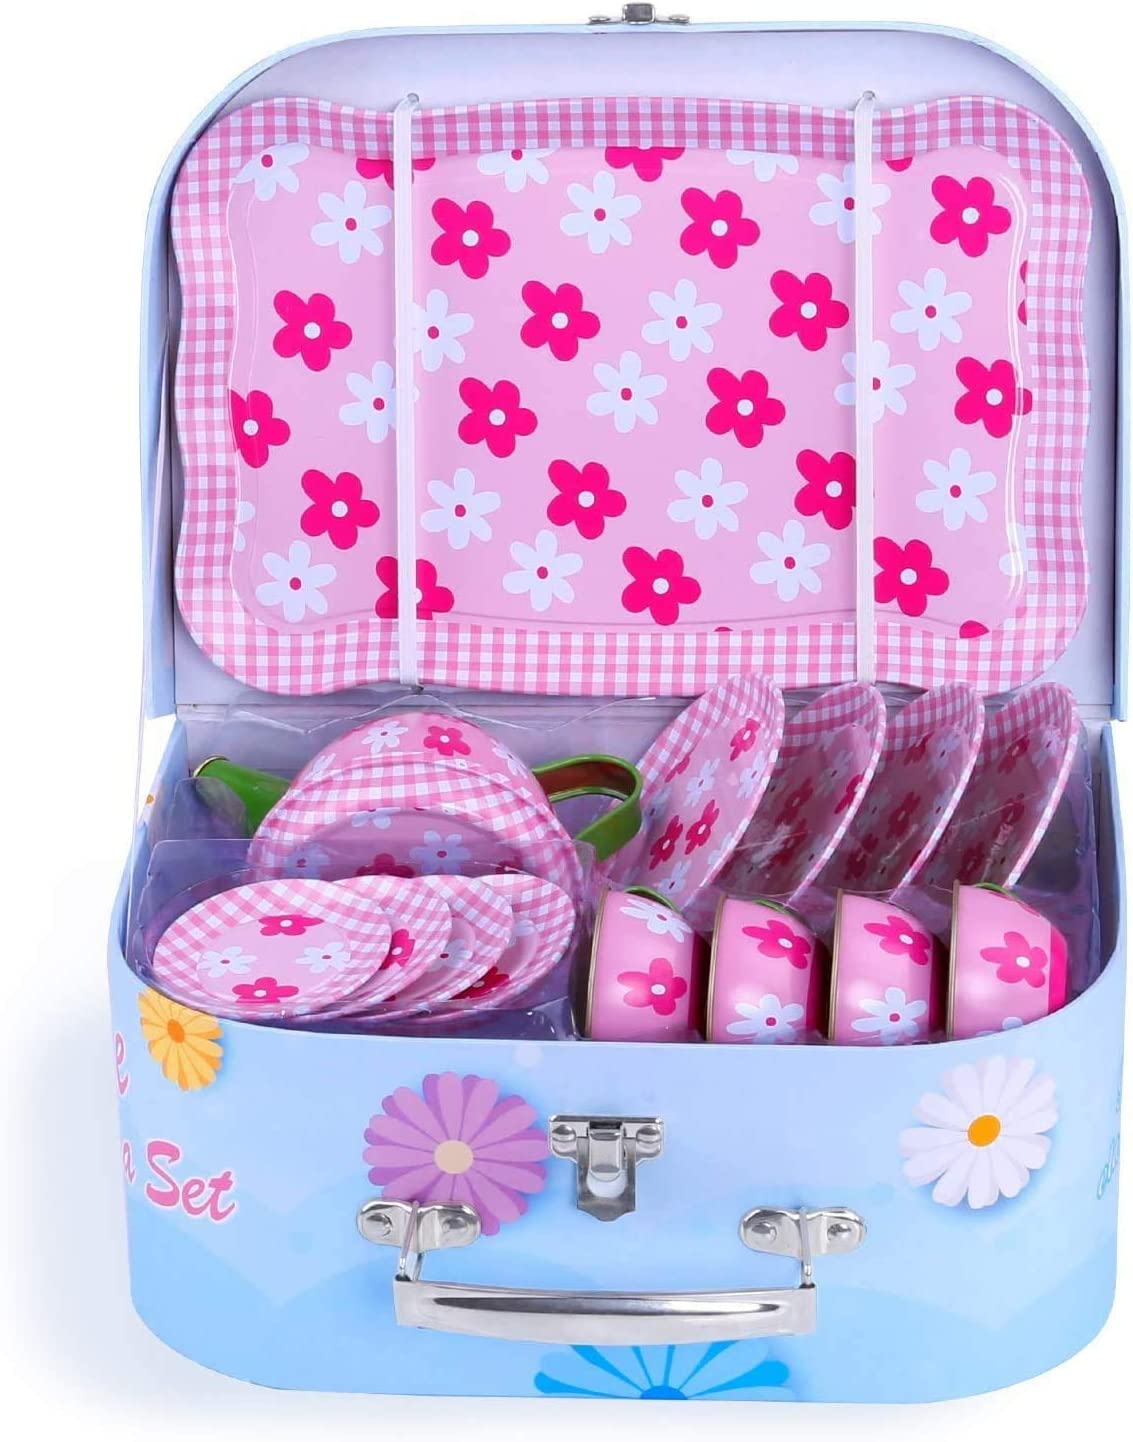 Tray and A Pink Flower Carry Case Noetoy Tea Party Set for Little Girls Tea Cups Plates /& Saucers Toy Pretend Play Kitchen Metal Tea Set 15 Pieces Including Play Tea Pot